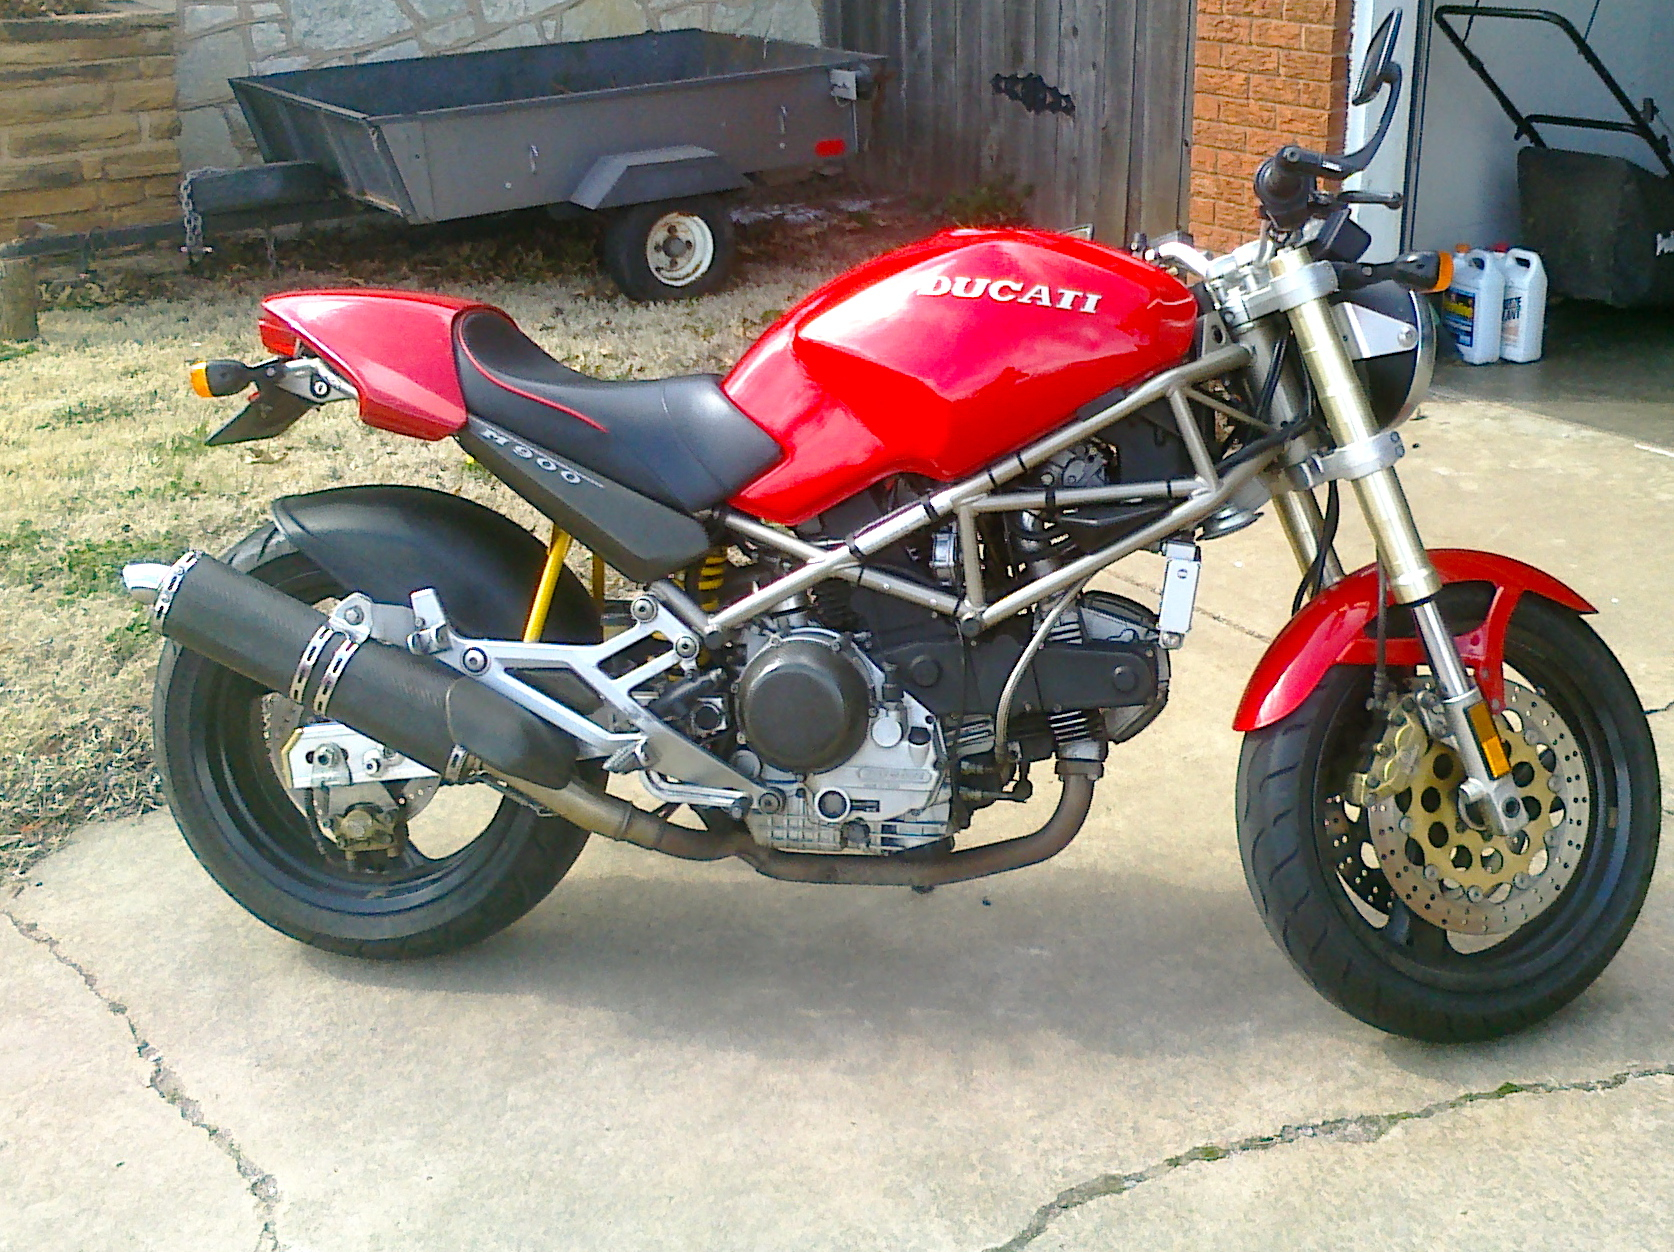 Ducati Monster 800 images #154658